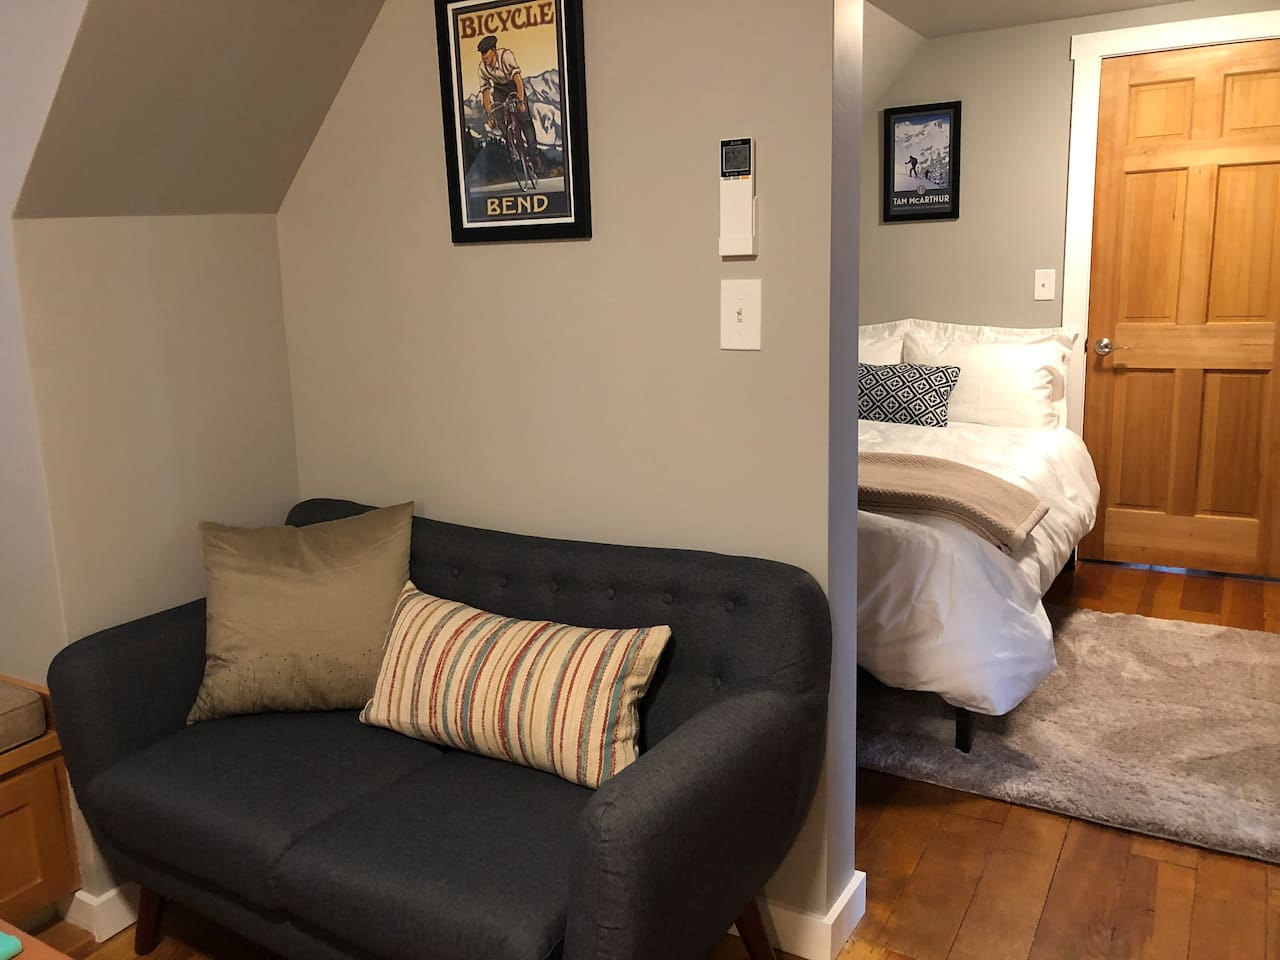 This cute little suite is all you need.  Newly remodeled, but keeping the charm of the original 1920's mill house.  We hope you enjoy it!